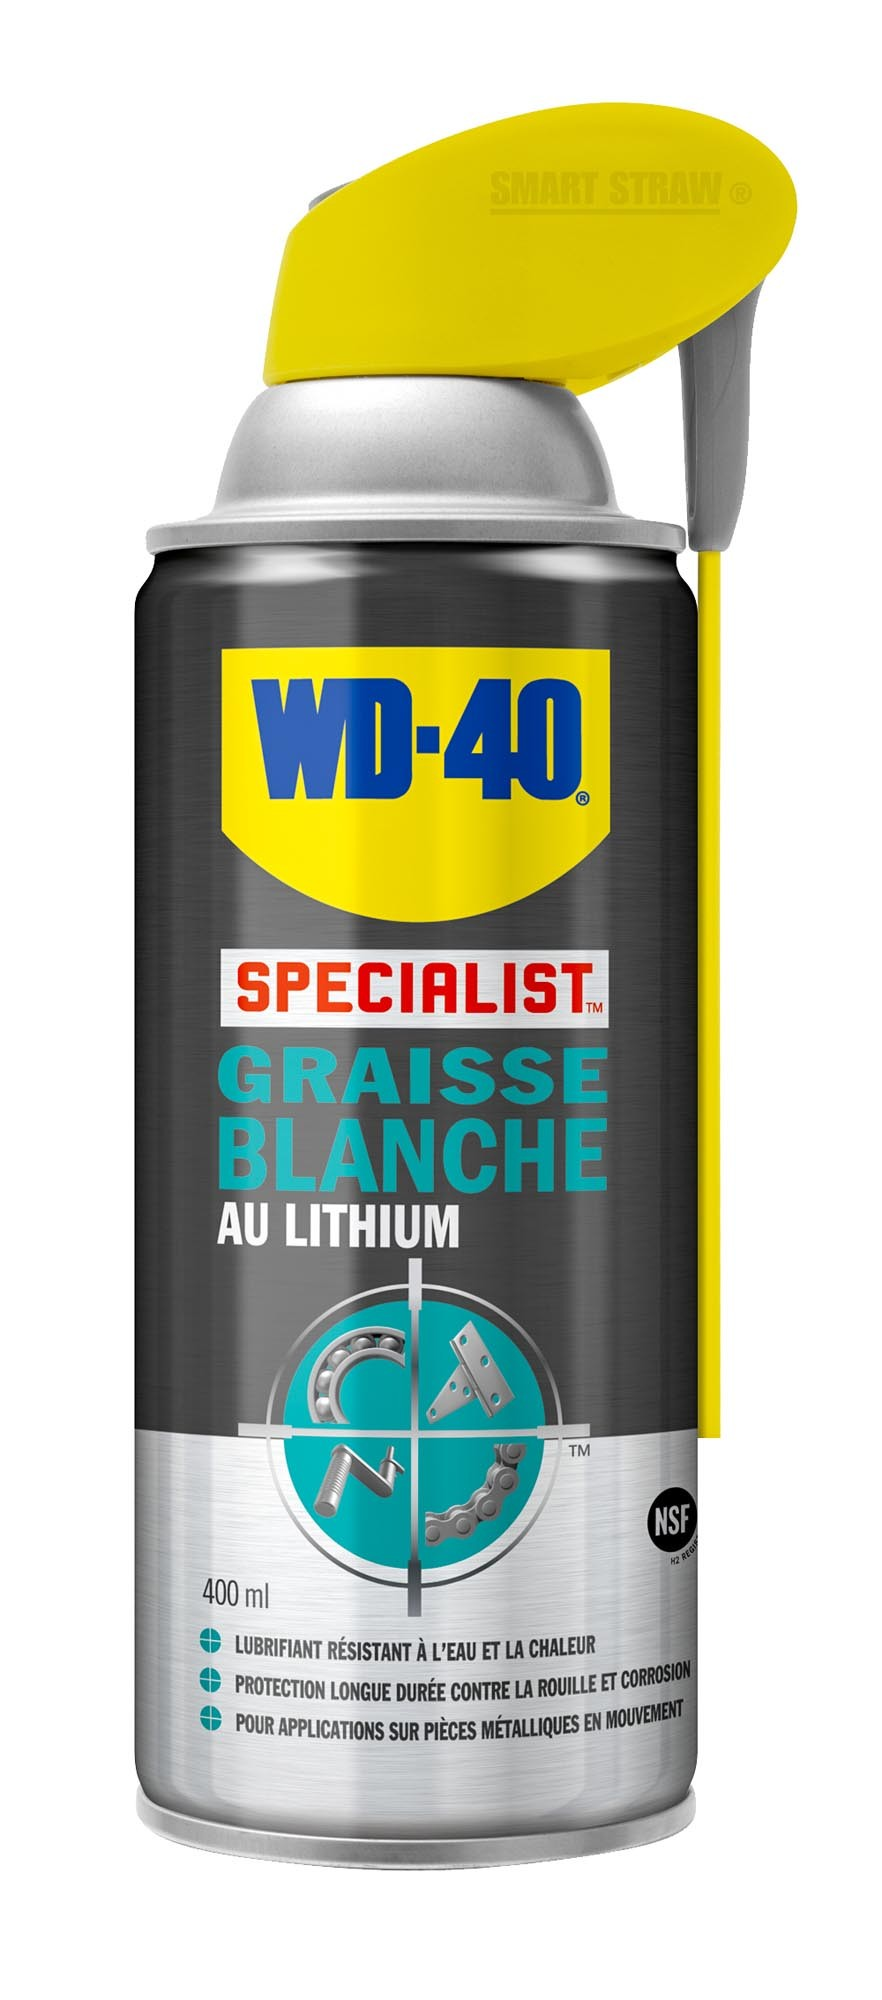 Spray graisse blanche lithium wd-40, made in chasse - equ...